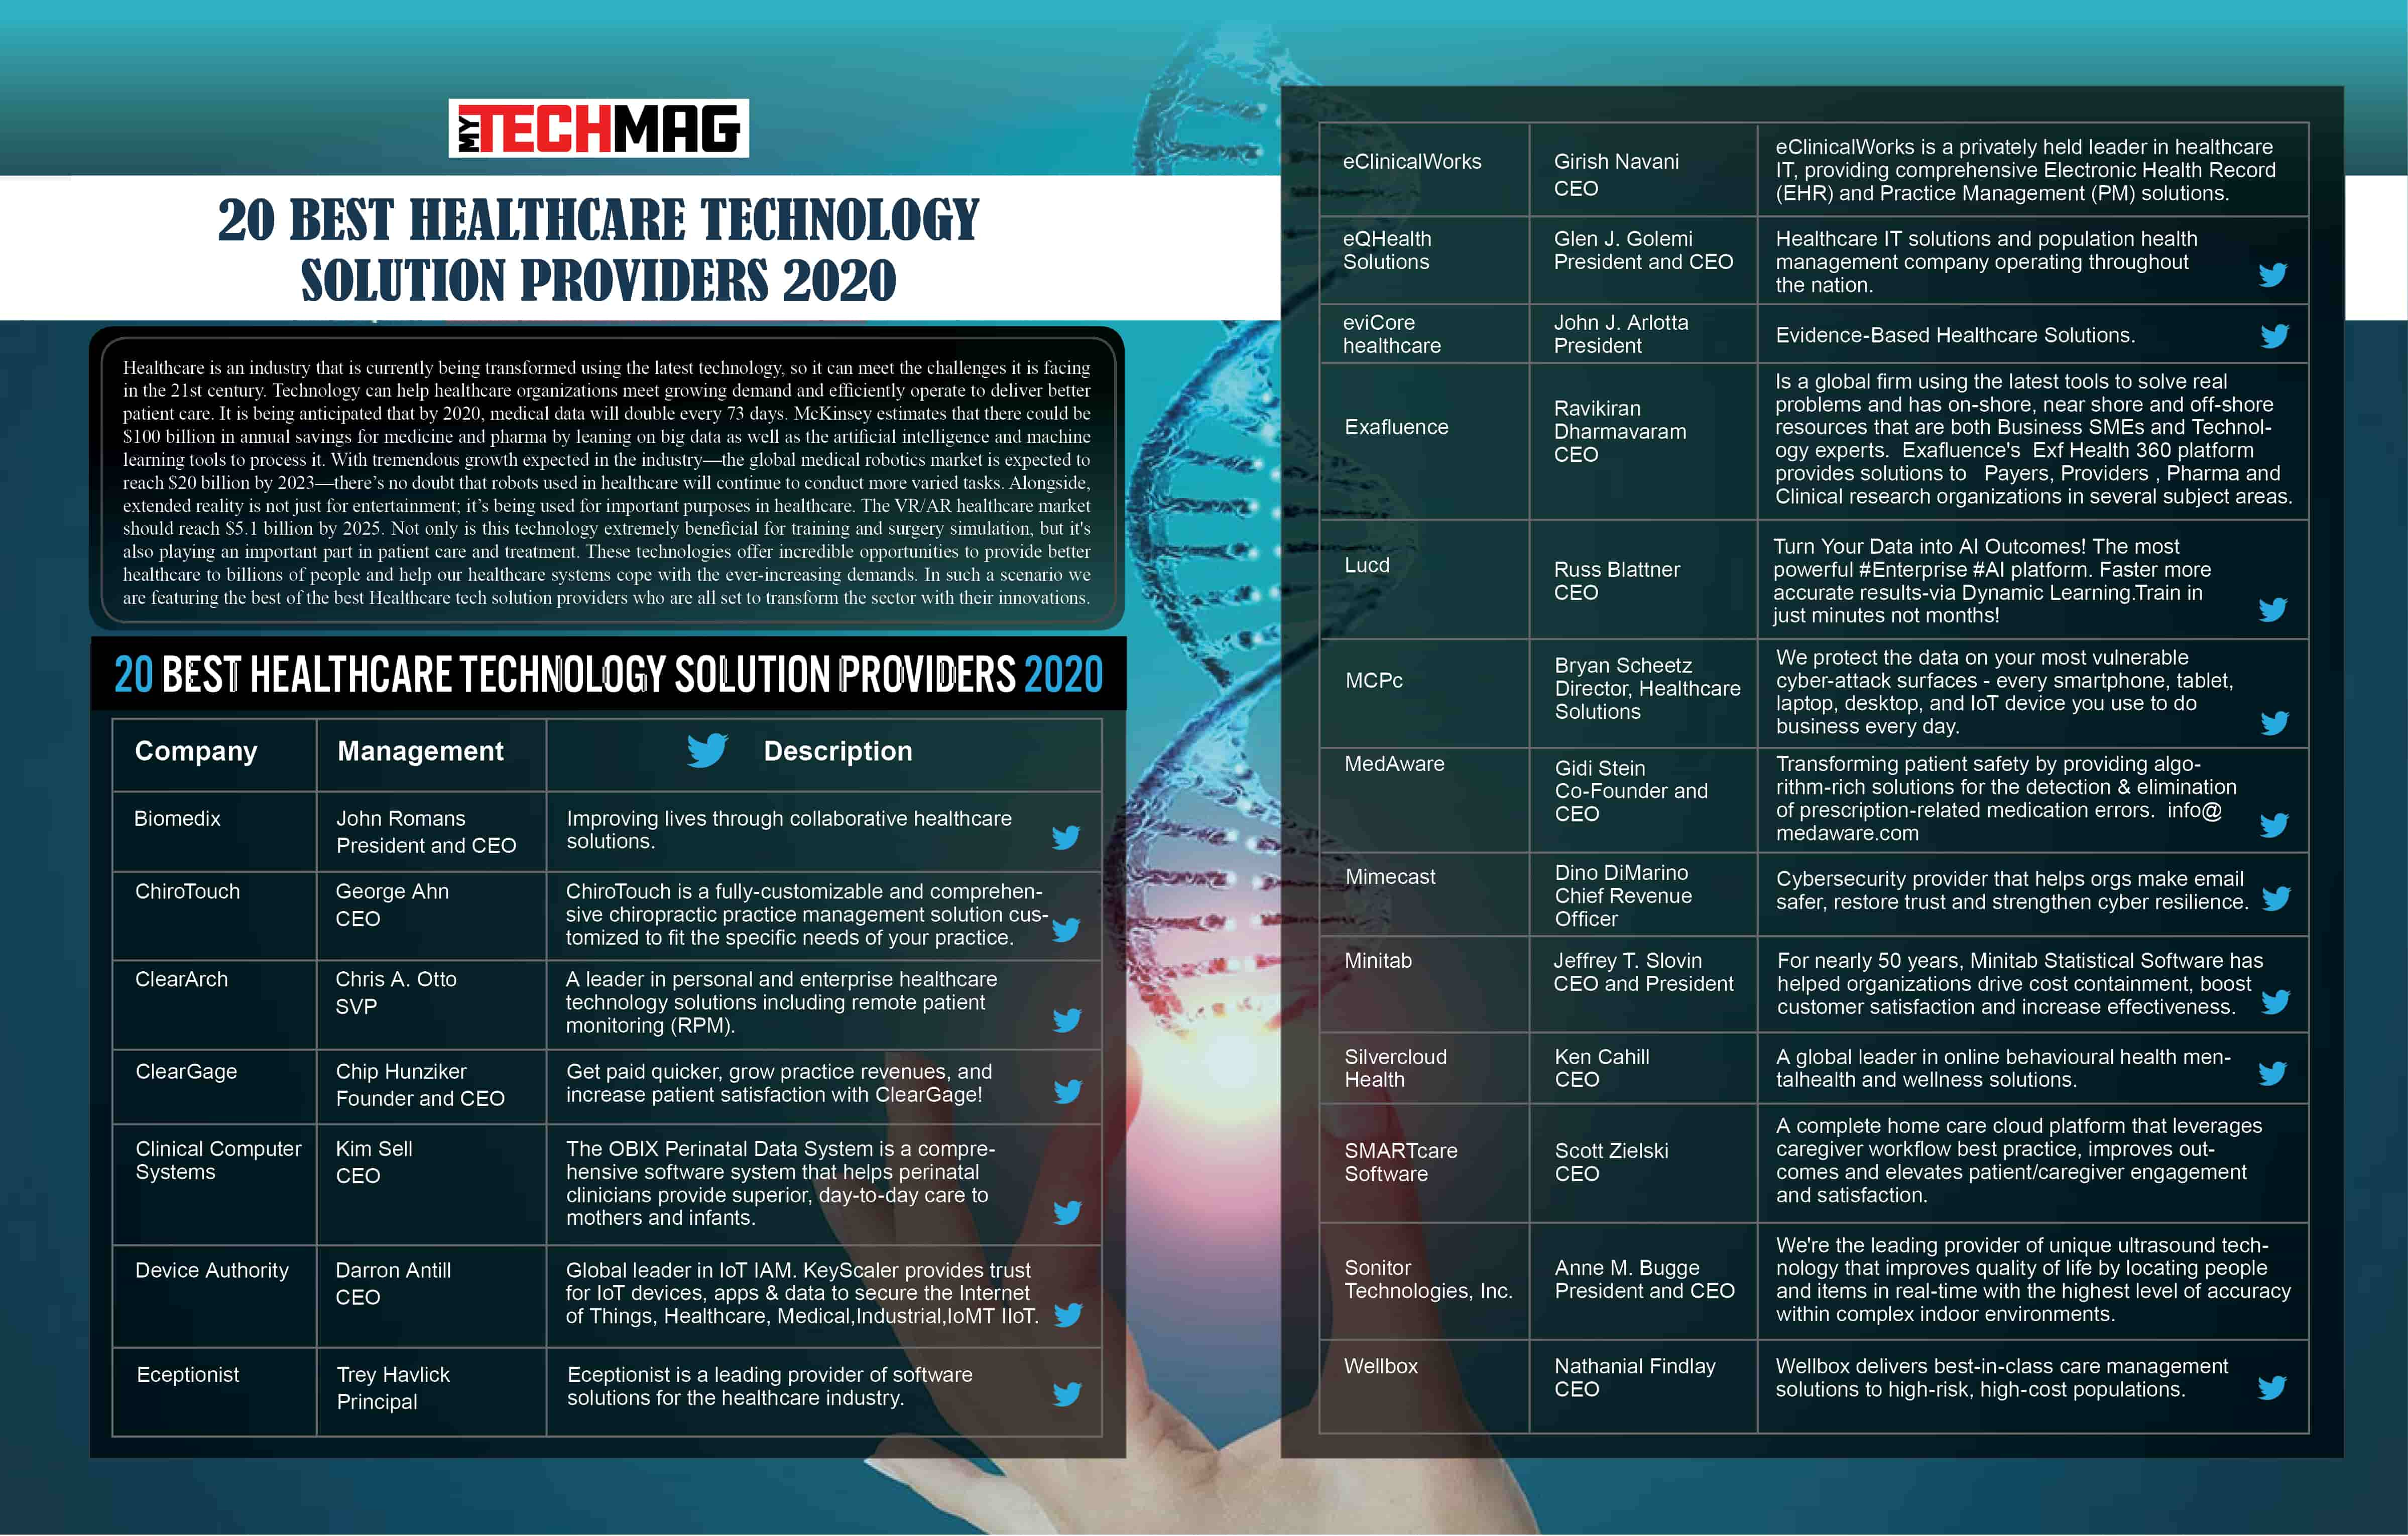 20 Best Healthcare Technology Solution Providers 2020